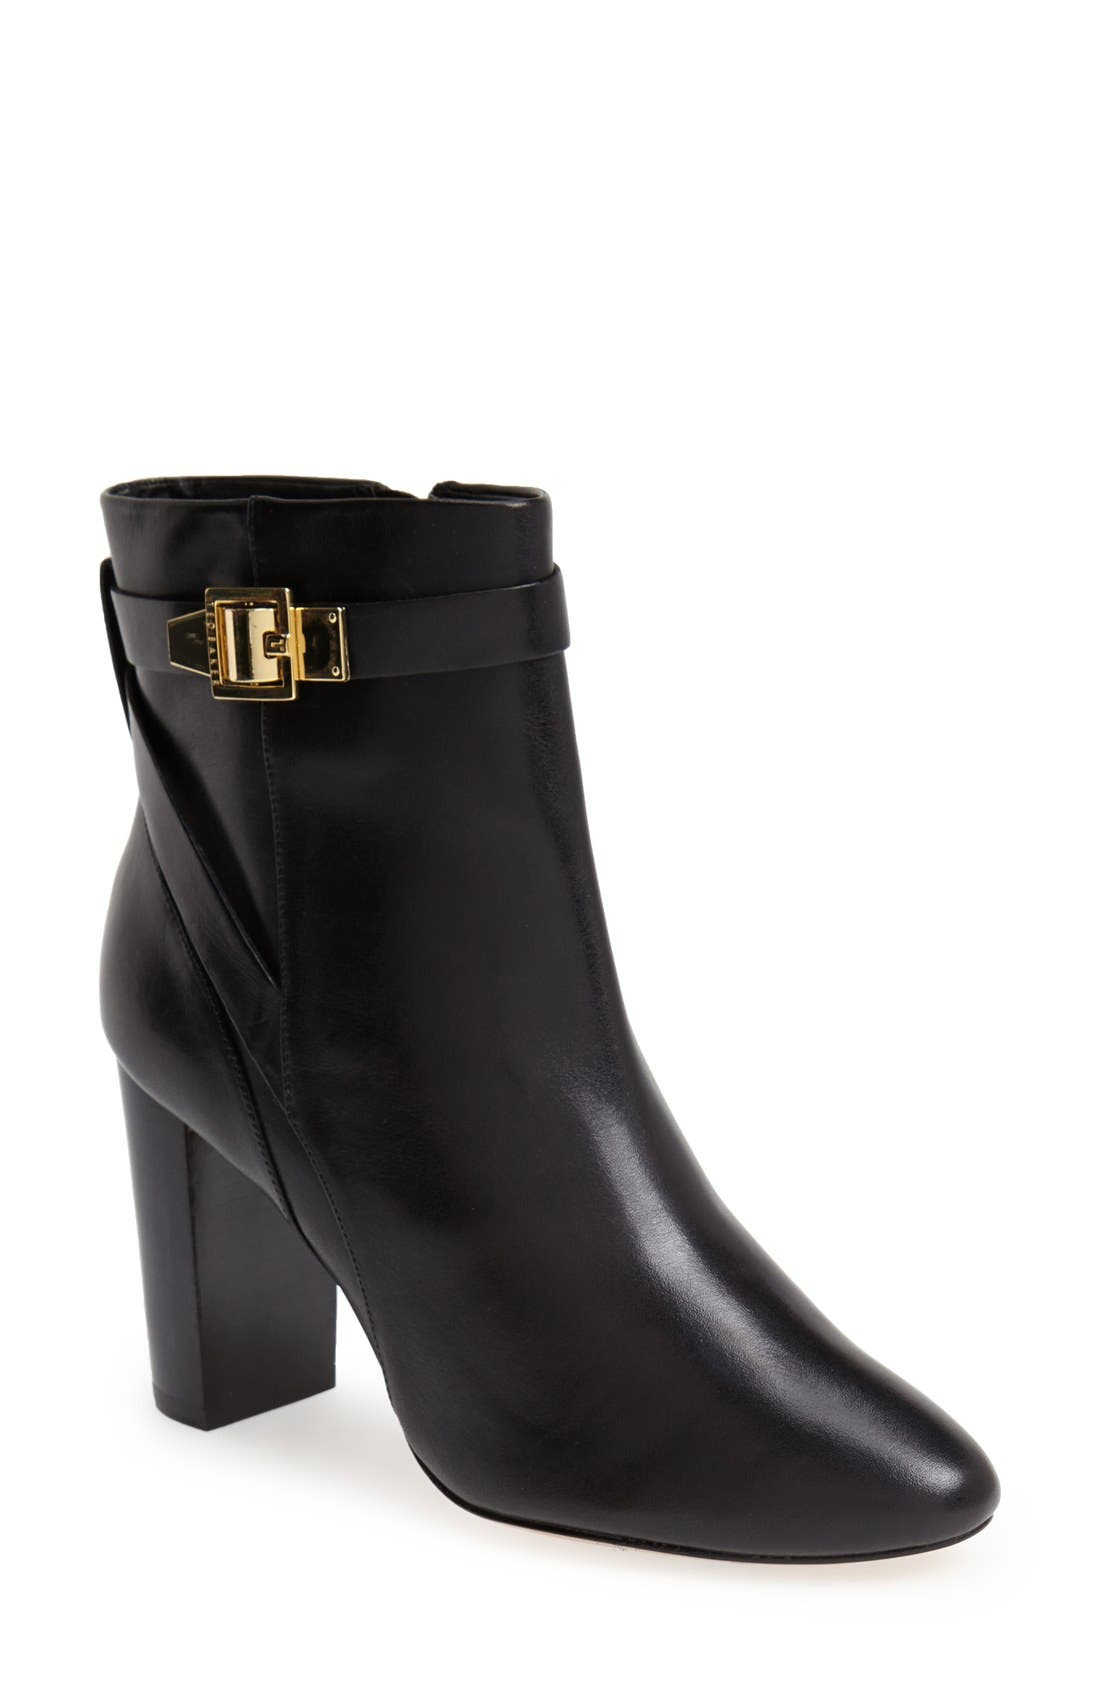 Alternate Image 1 Selected - Ted Baker London 'Micka' Leather Boot (Women)